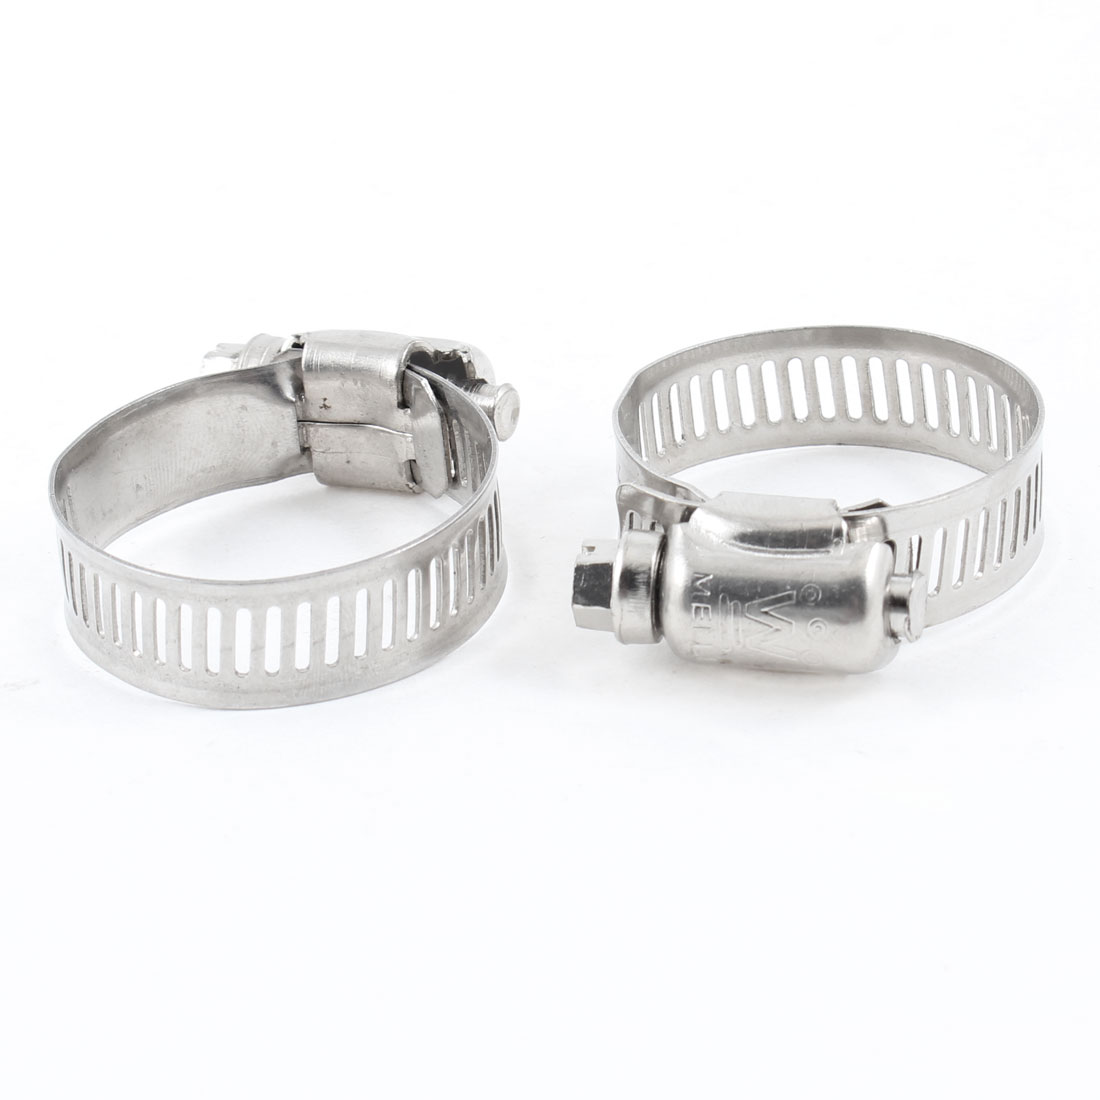 Adjustable-21mm-38mm-Stainless-Steel-Worm-Gear-Hose-Clamps-2-Pcs